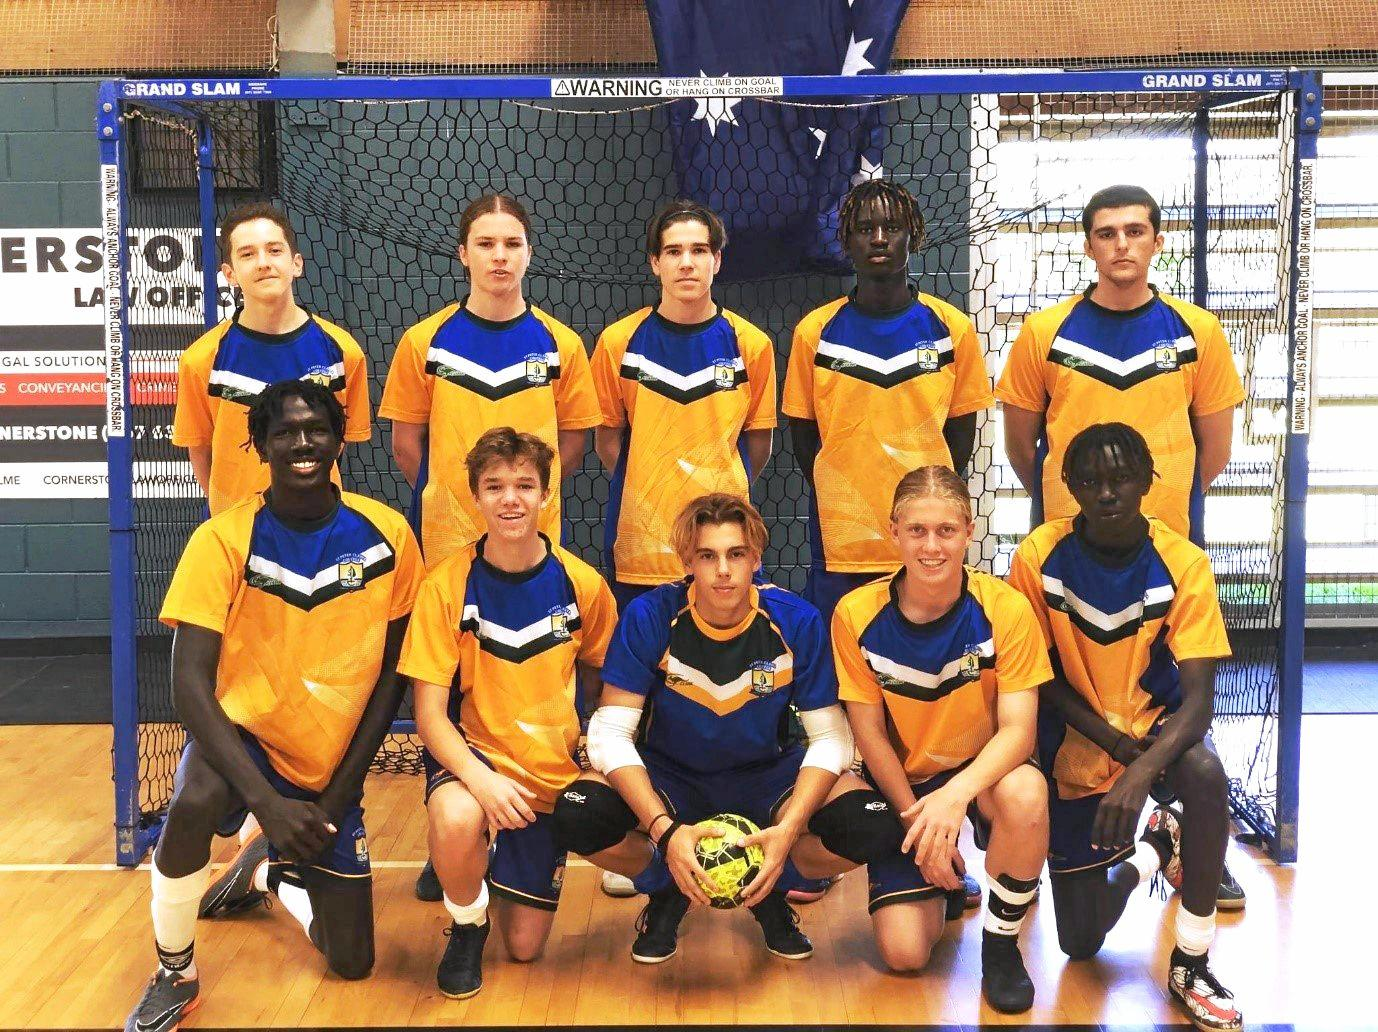 St Peter Claver College's skilful futsal team: Back row - Jaylen Vaughan, Ky Bowman, Joel Hunter (captain), Francis Marle and Michael Groombridge. Front row: Deng Deng, Oliver Taylor-Frey, Anthony Buhse, Wyatt Weeks and Cher Deng.